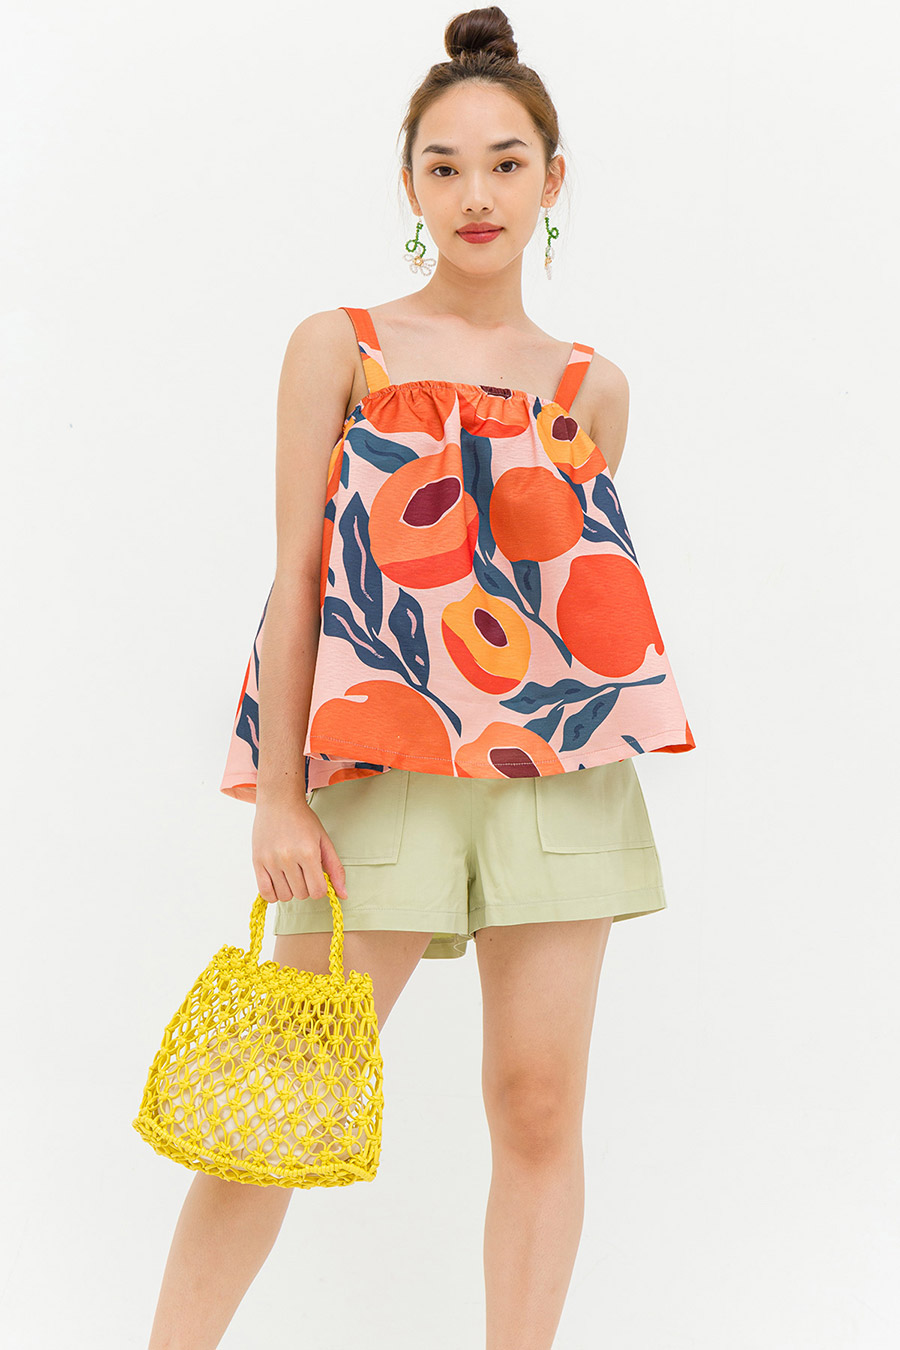 *RESTOCKED* COURTNEY TOP - PEACHES [BY MODPARADE]